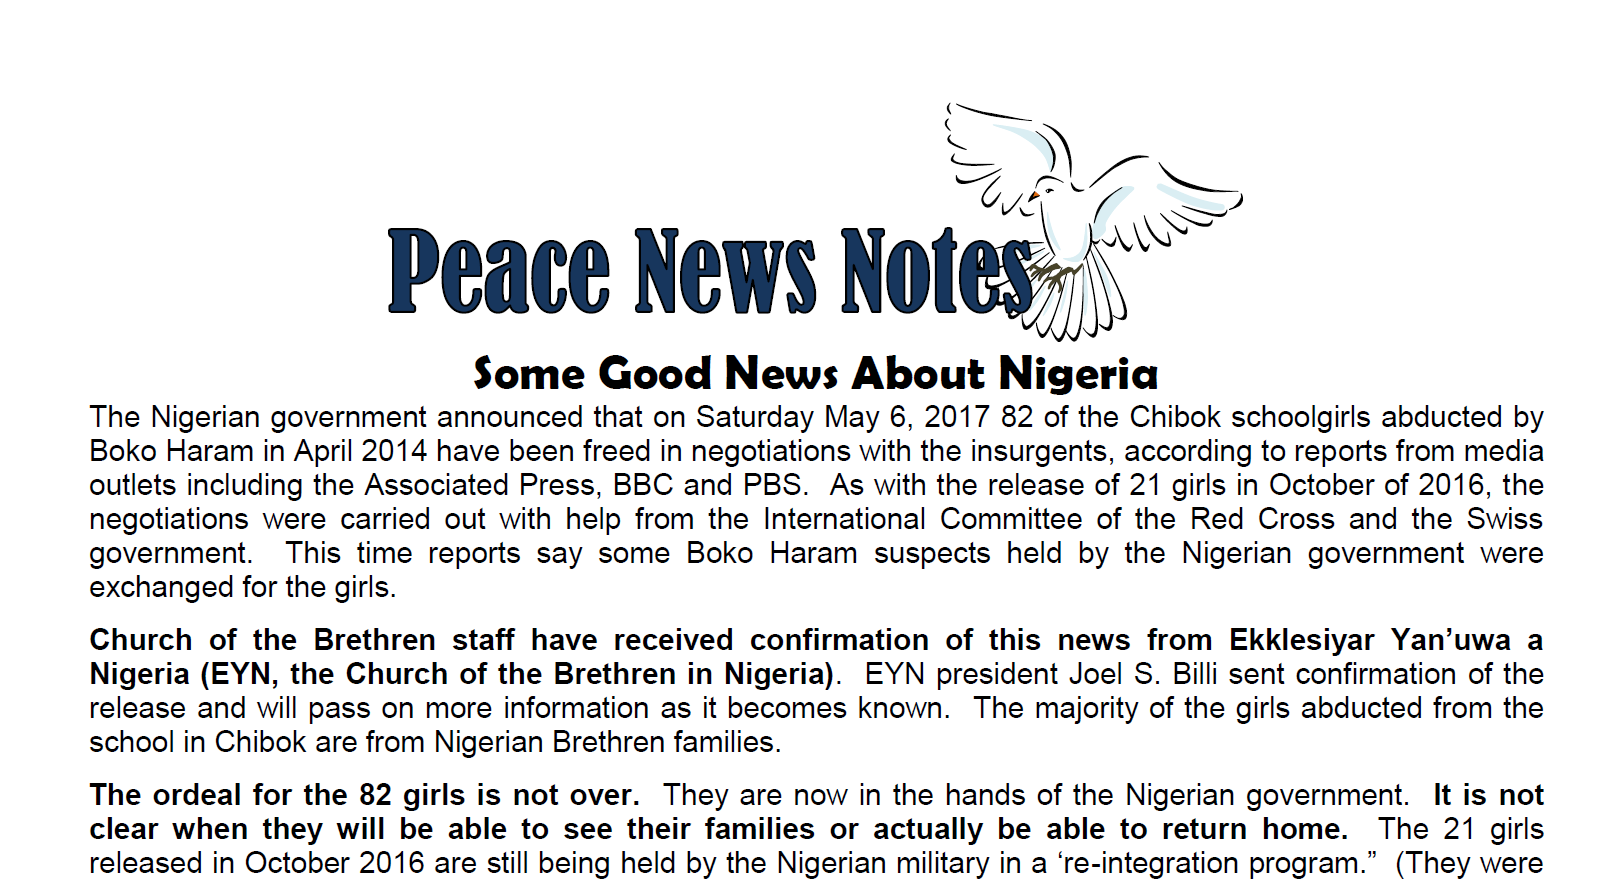 Some Good News from Nigeria